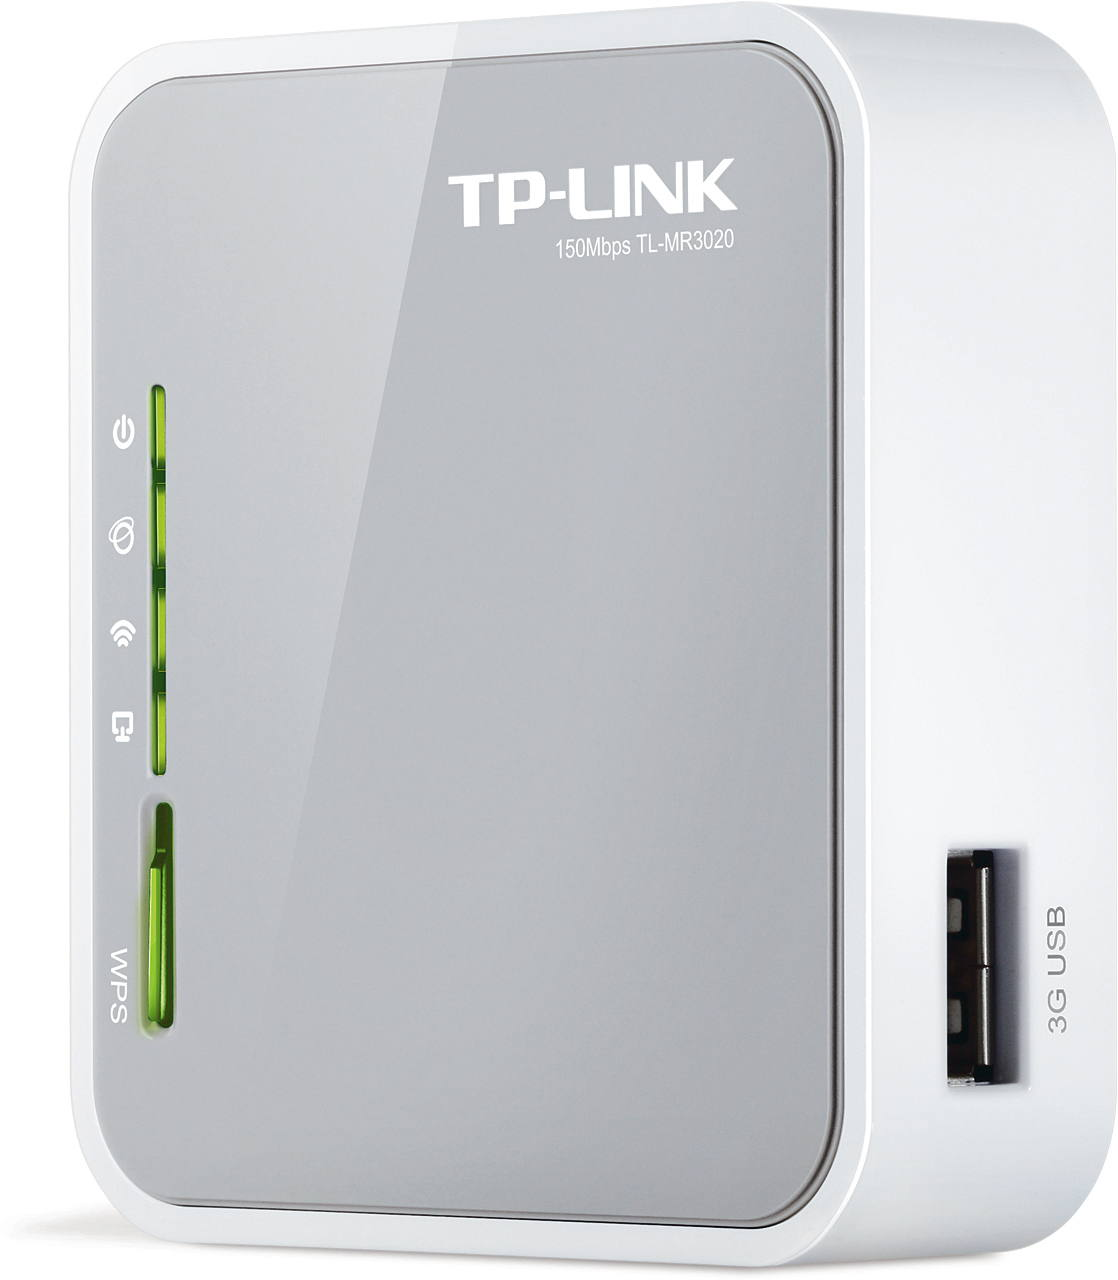 Ver TP-LINK 3G ROUTER 300M UMTS